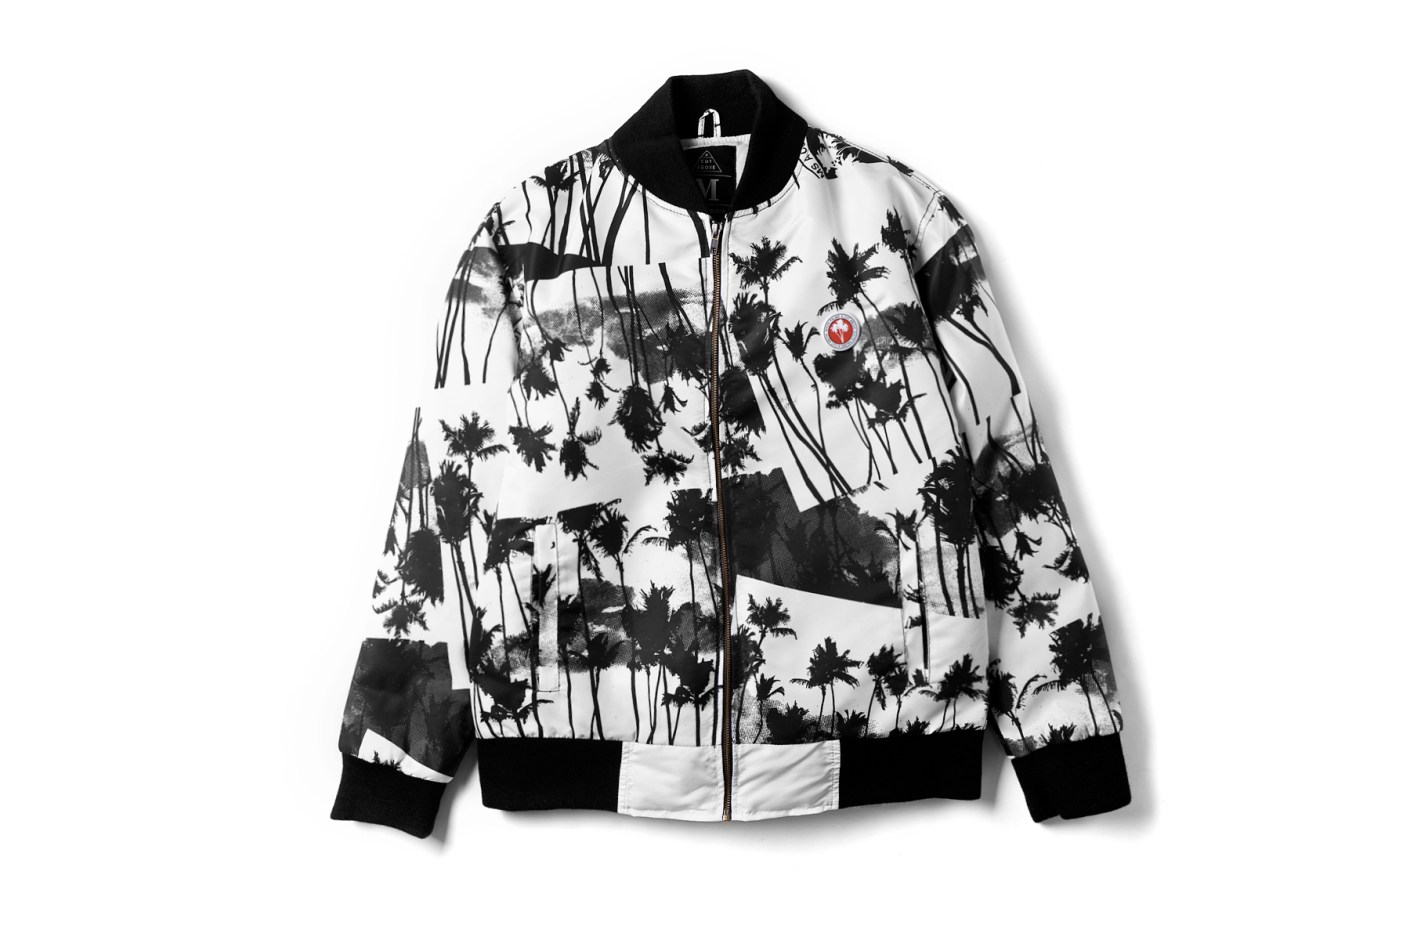 Image of A Cut Above 2014 Spring/Summer Palm Print Jackets